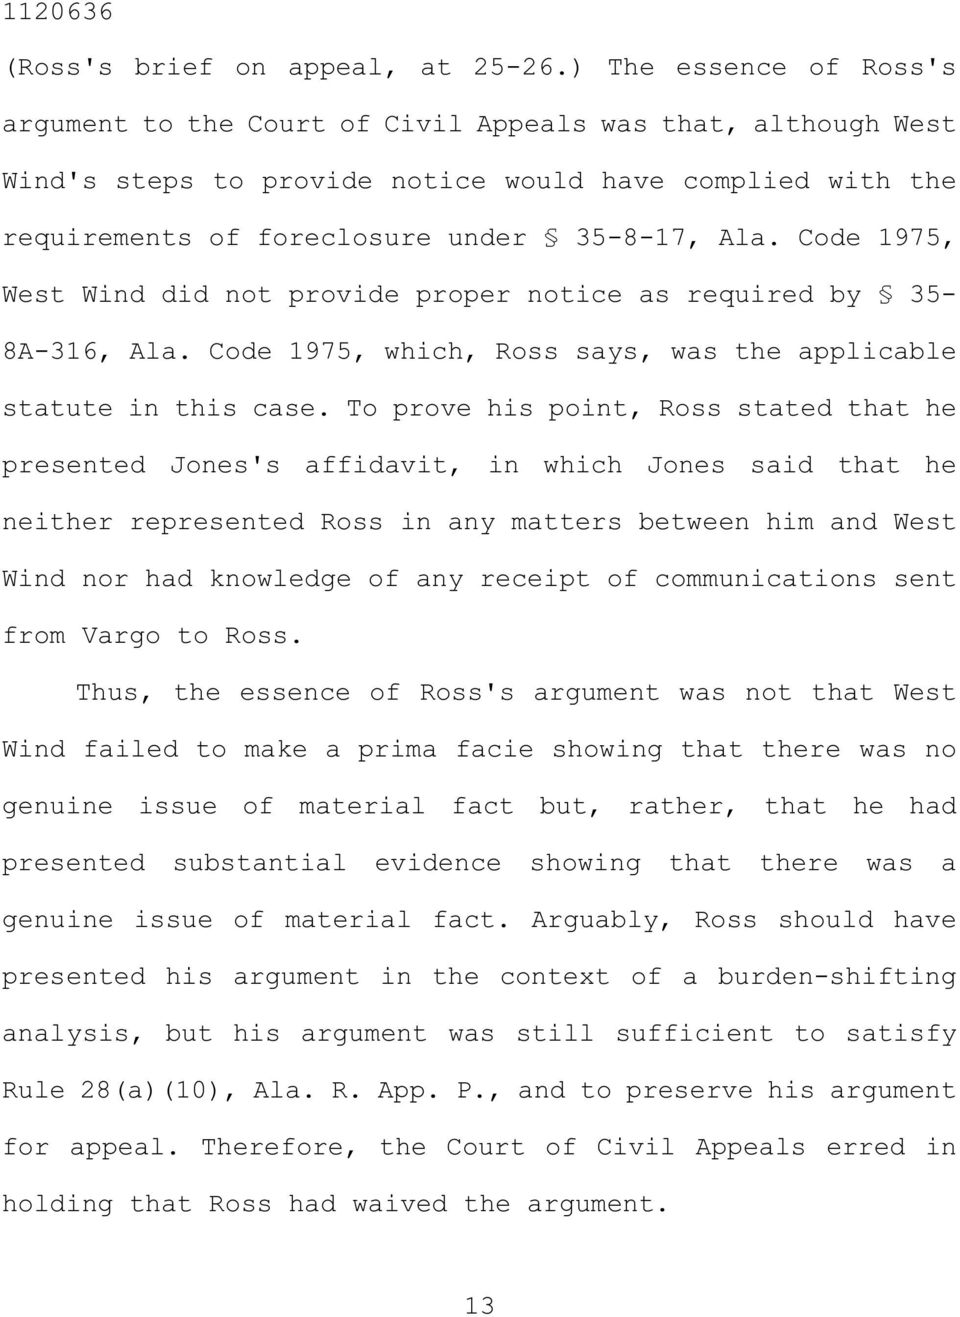 Code 1975, West Wind did not provide proper notice as required by 35-8A-316, Ala. Code 1975, which, Ross says, was the applicable statute in this case.